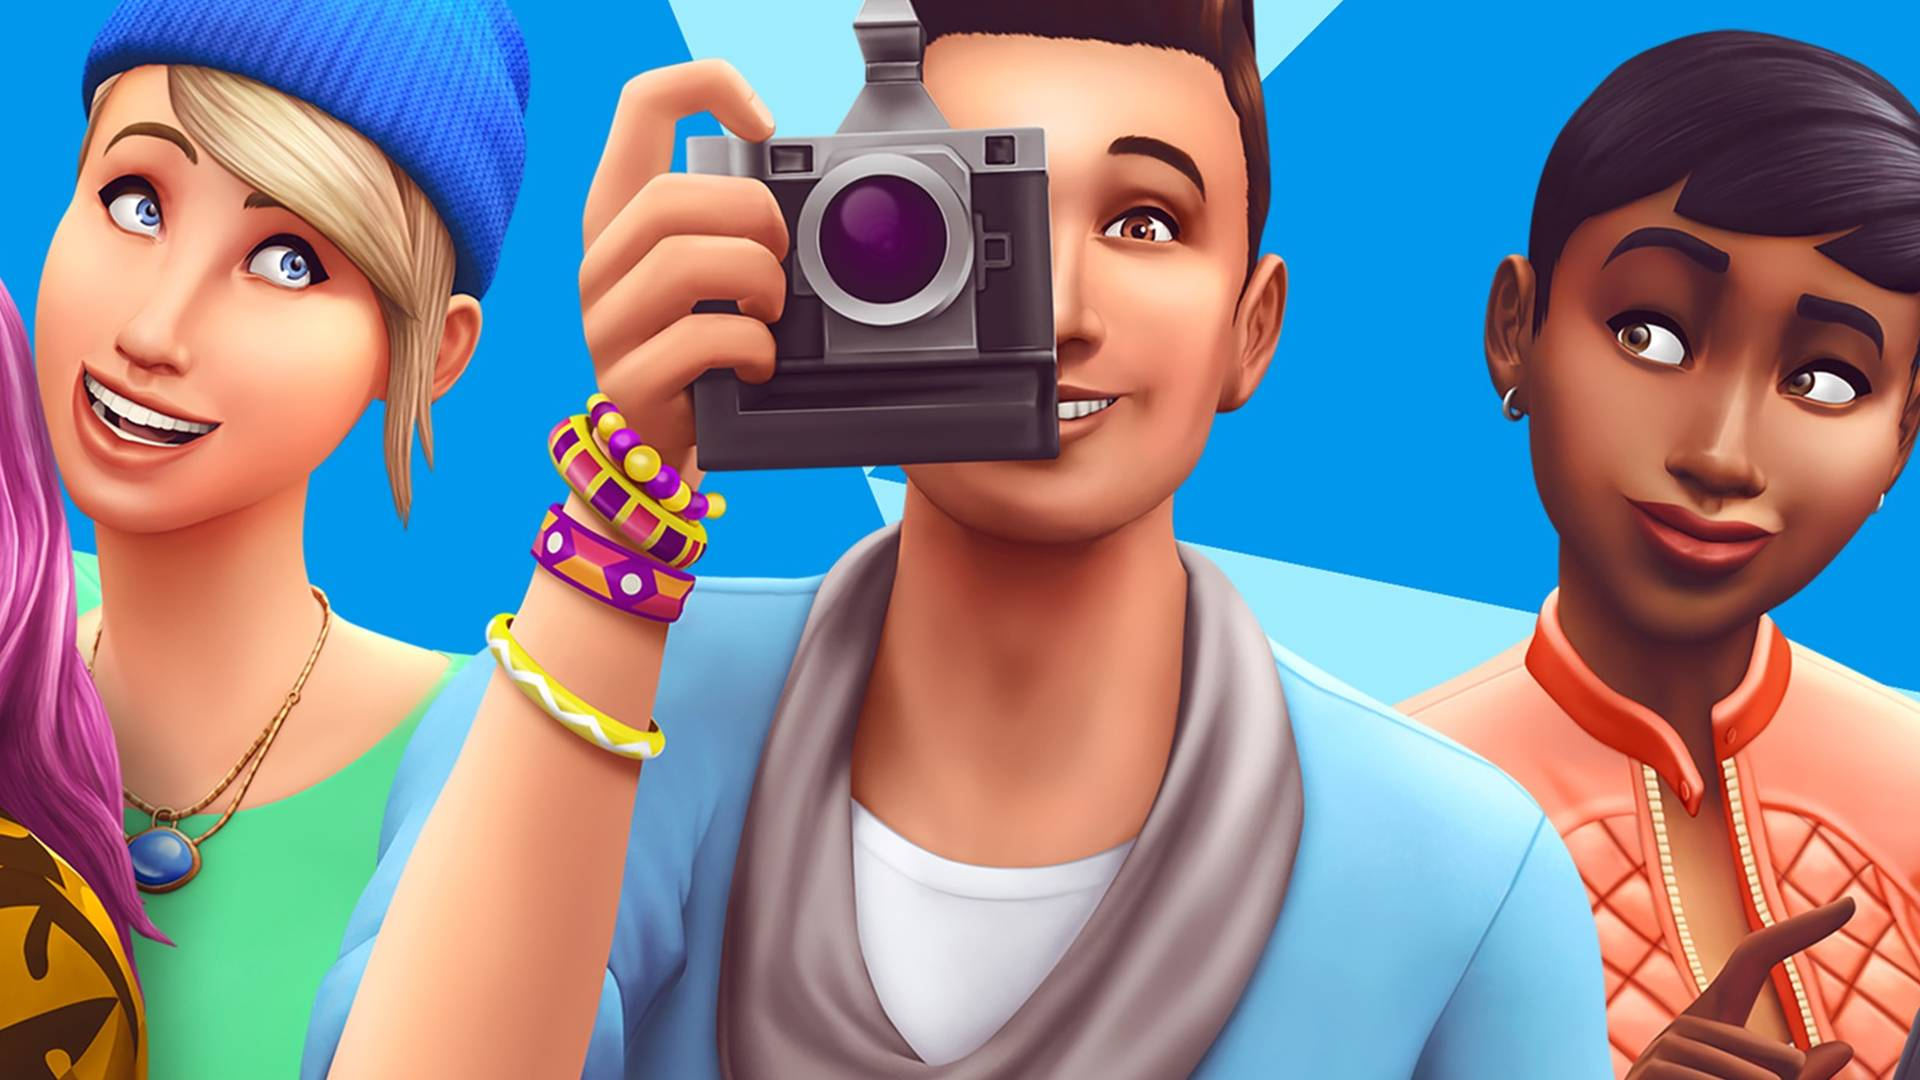 How to use The Sims 4 cheats- Money, skills, Build:Buy, Occults, and more